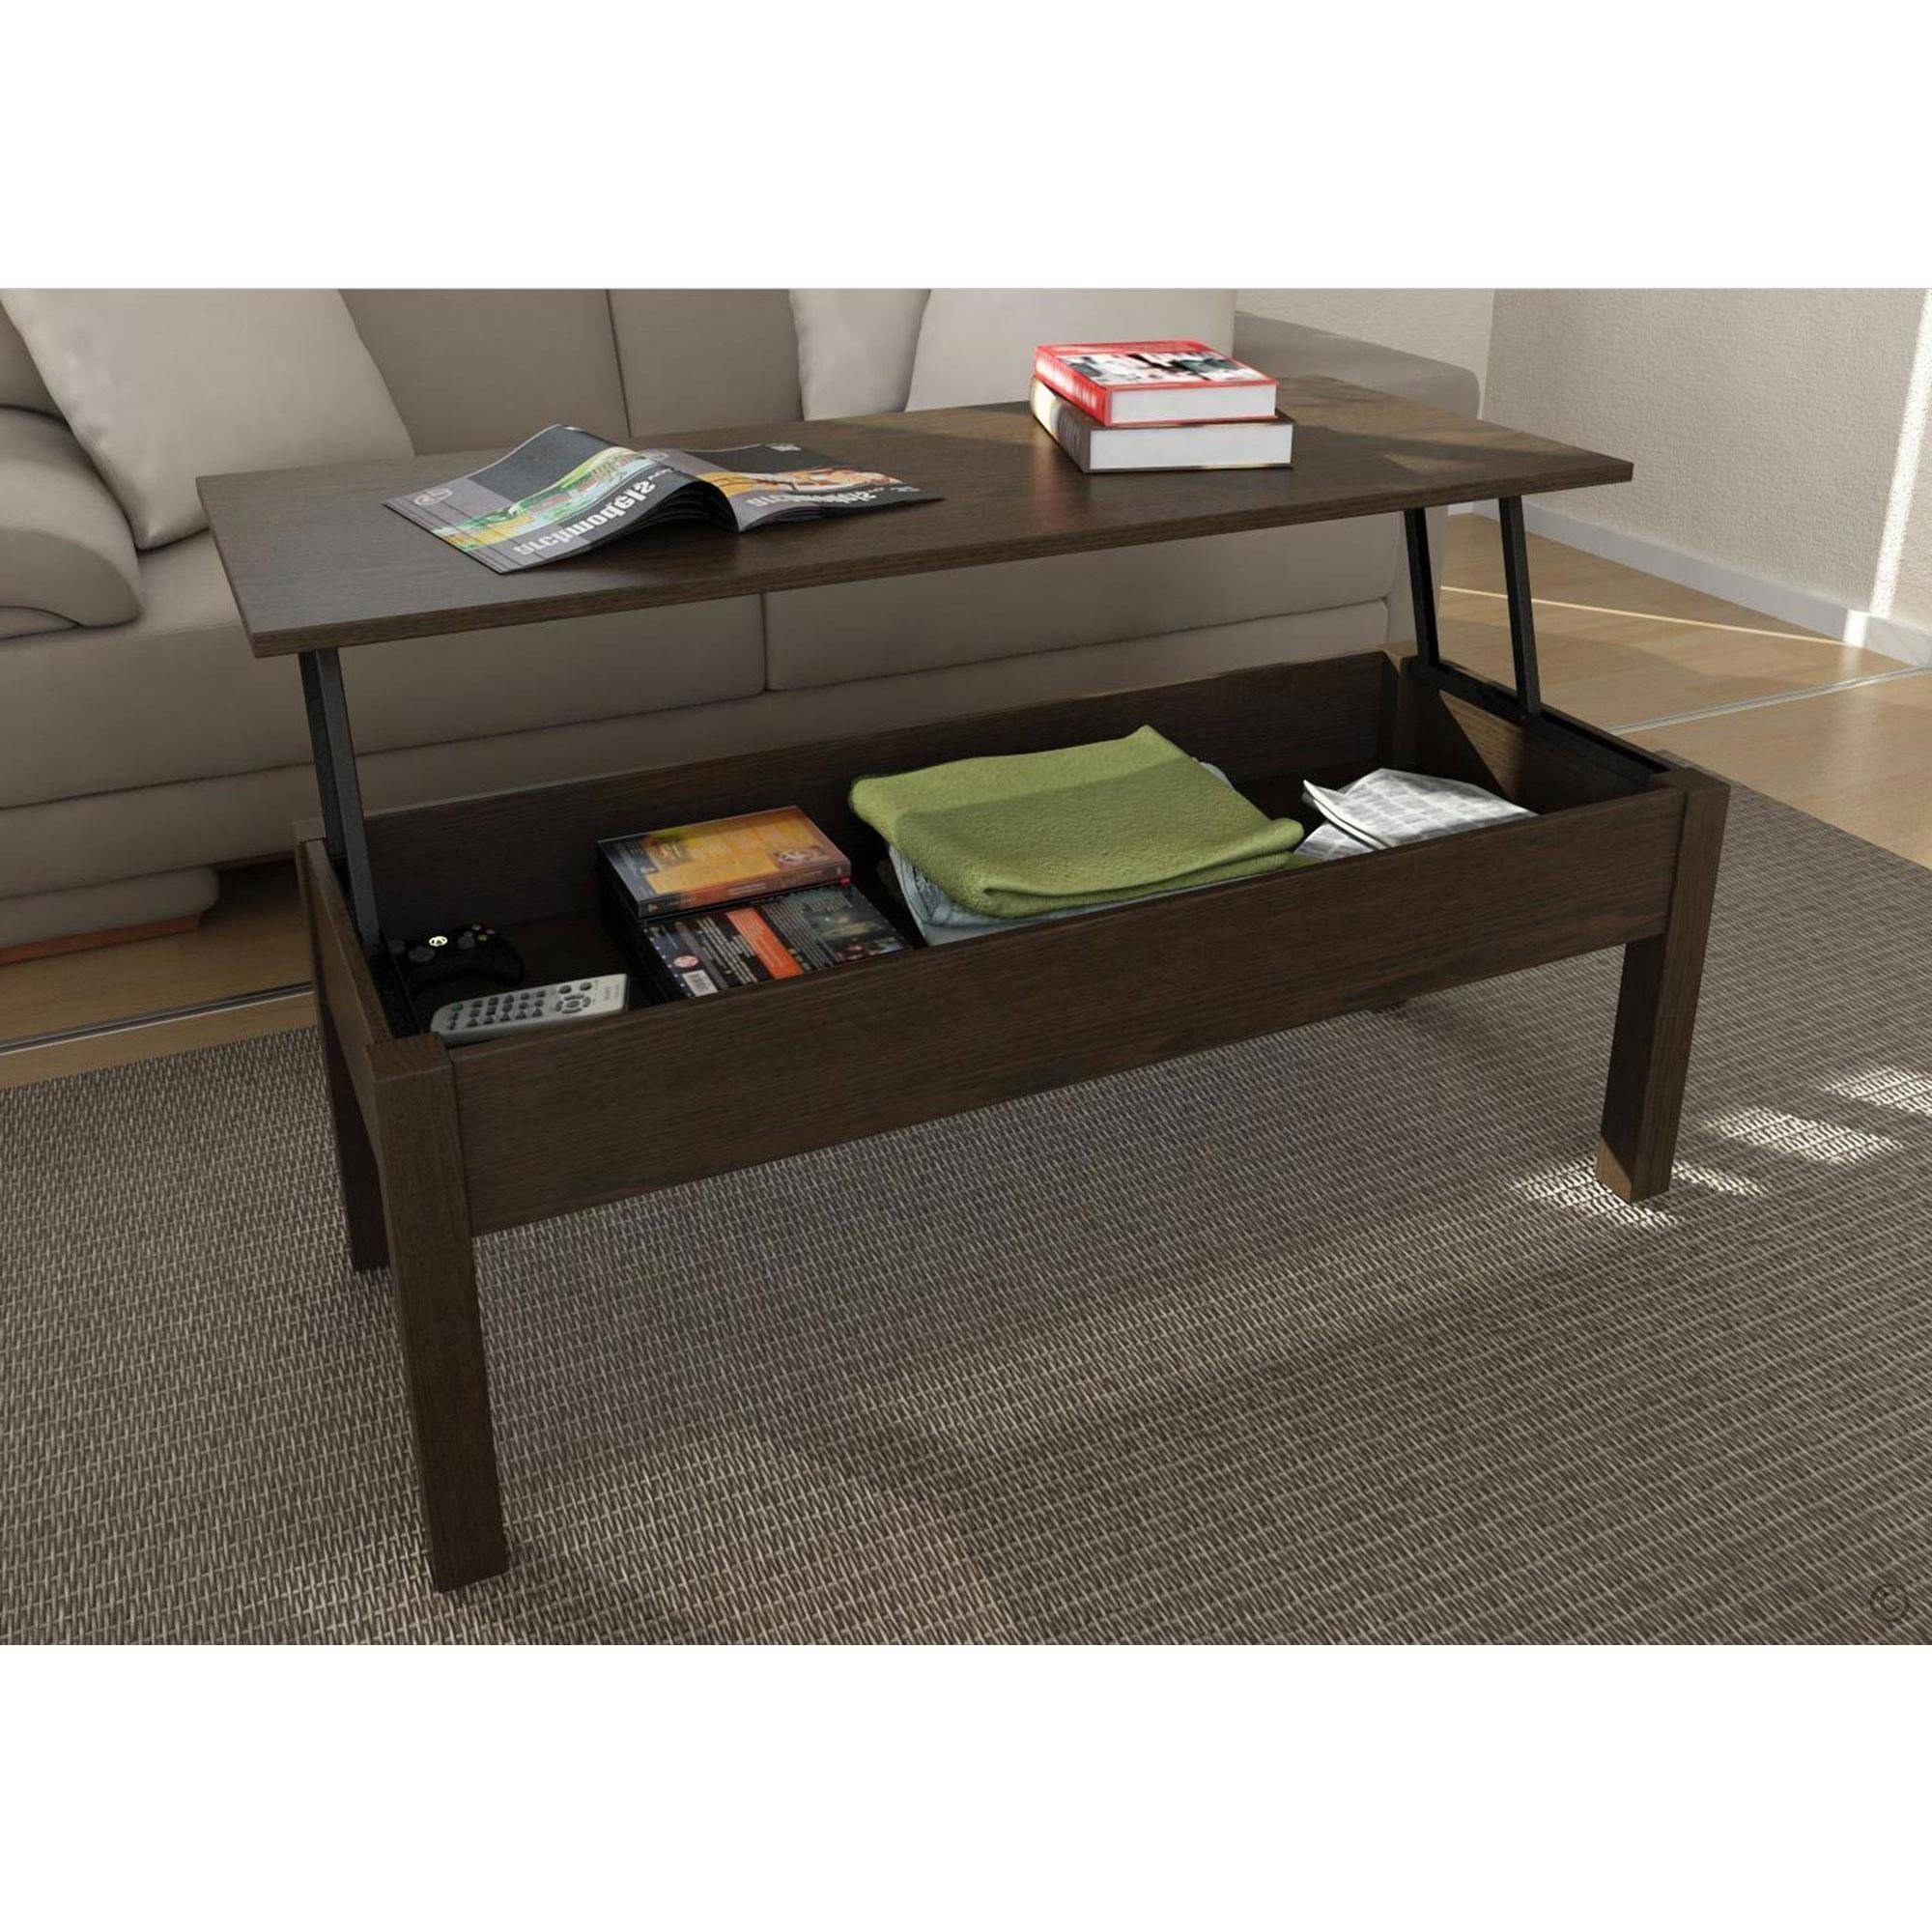 Mainstays Lift Top Coffee Table, Multiple Colors – Walmart Within Raise Up Coffee Tables (View 15 of 30)